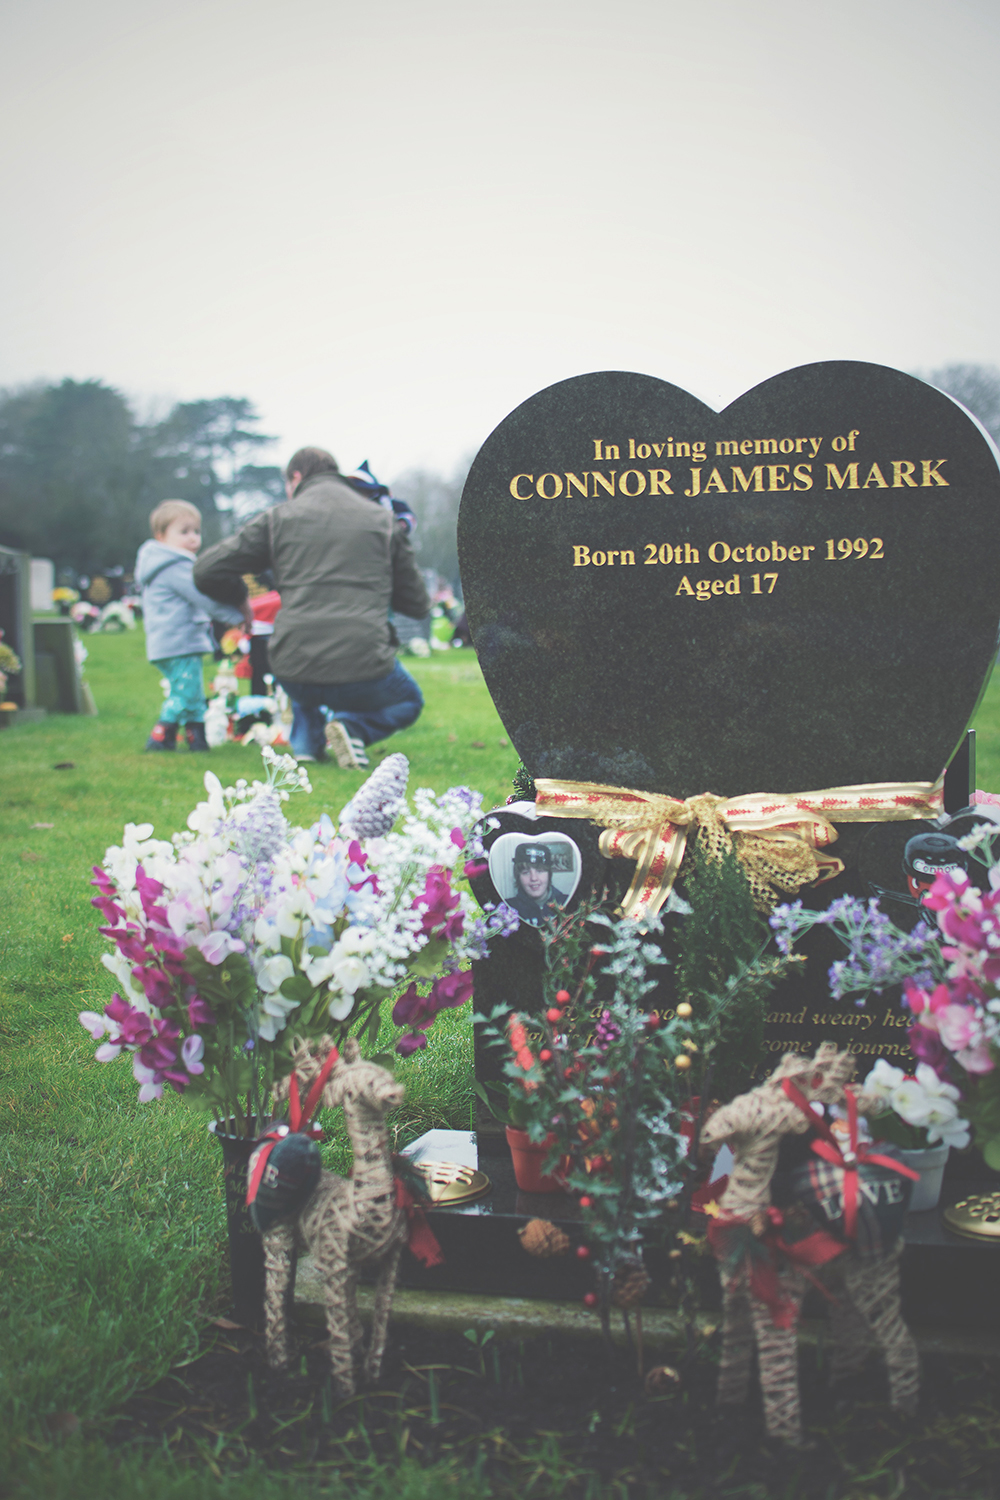 Another year gone, Brother. - Discussion around subjects of loss, grief and death of a loved one with Autism and learning difficulties from SADS, toddler nephew and family visiting grave at the cemetery for Christmas